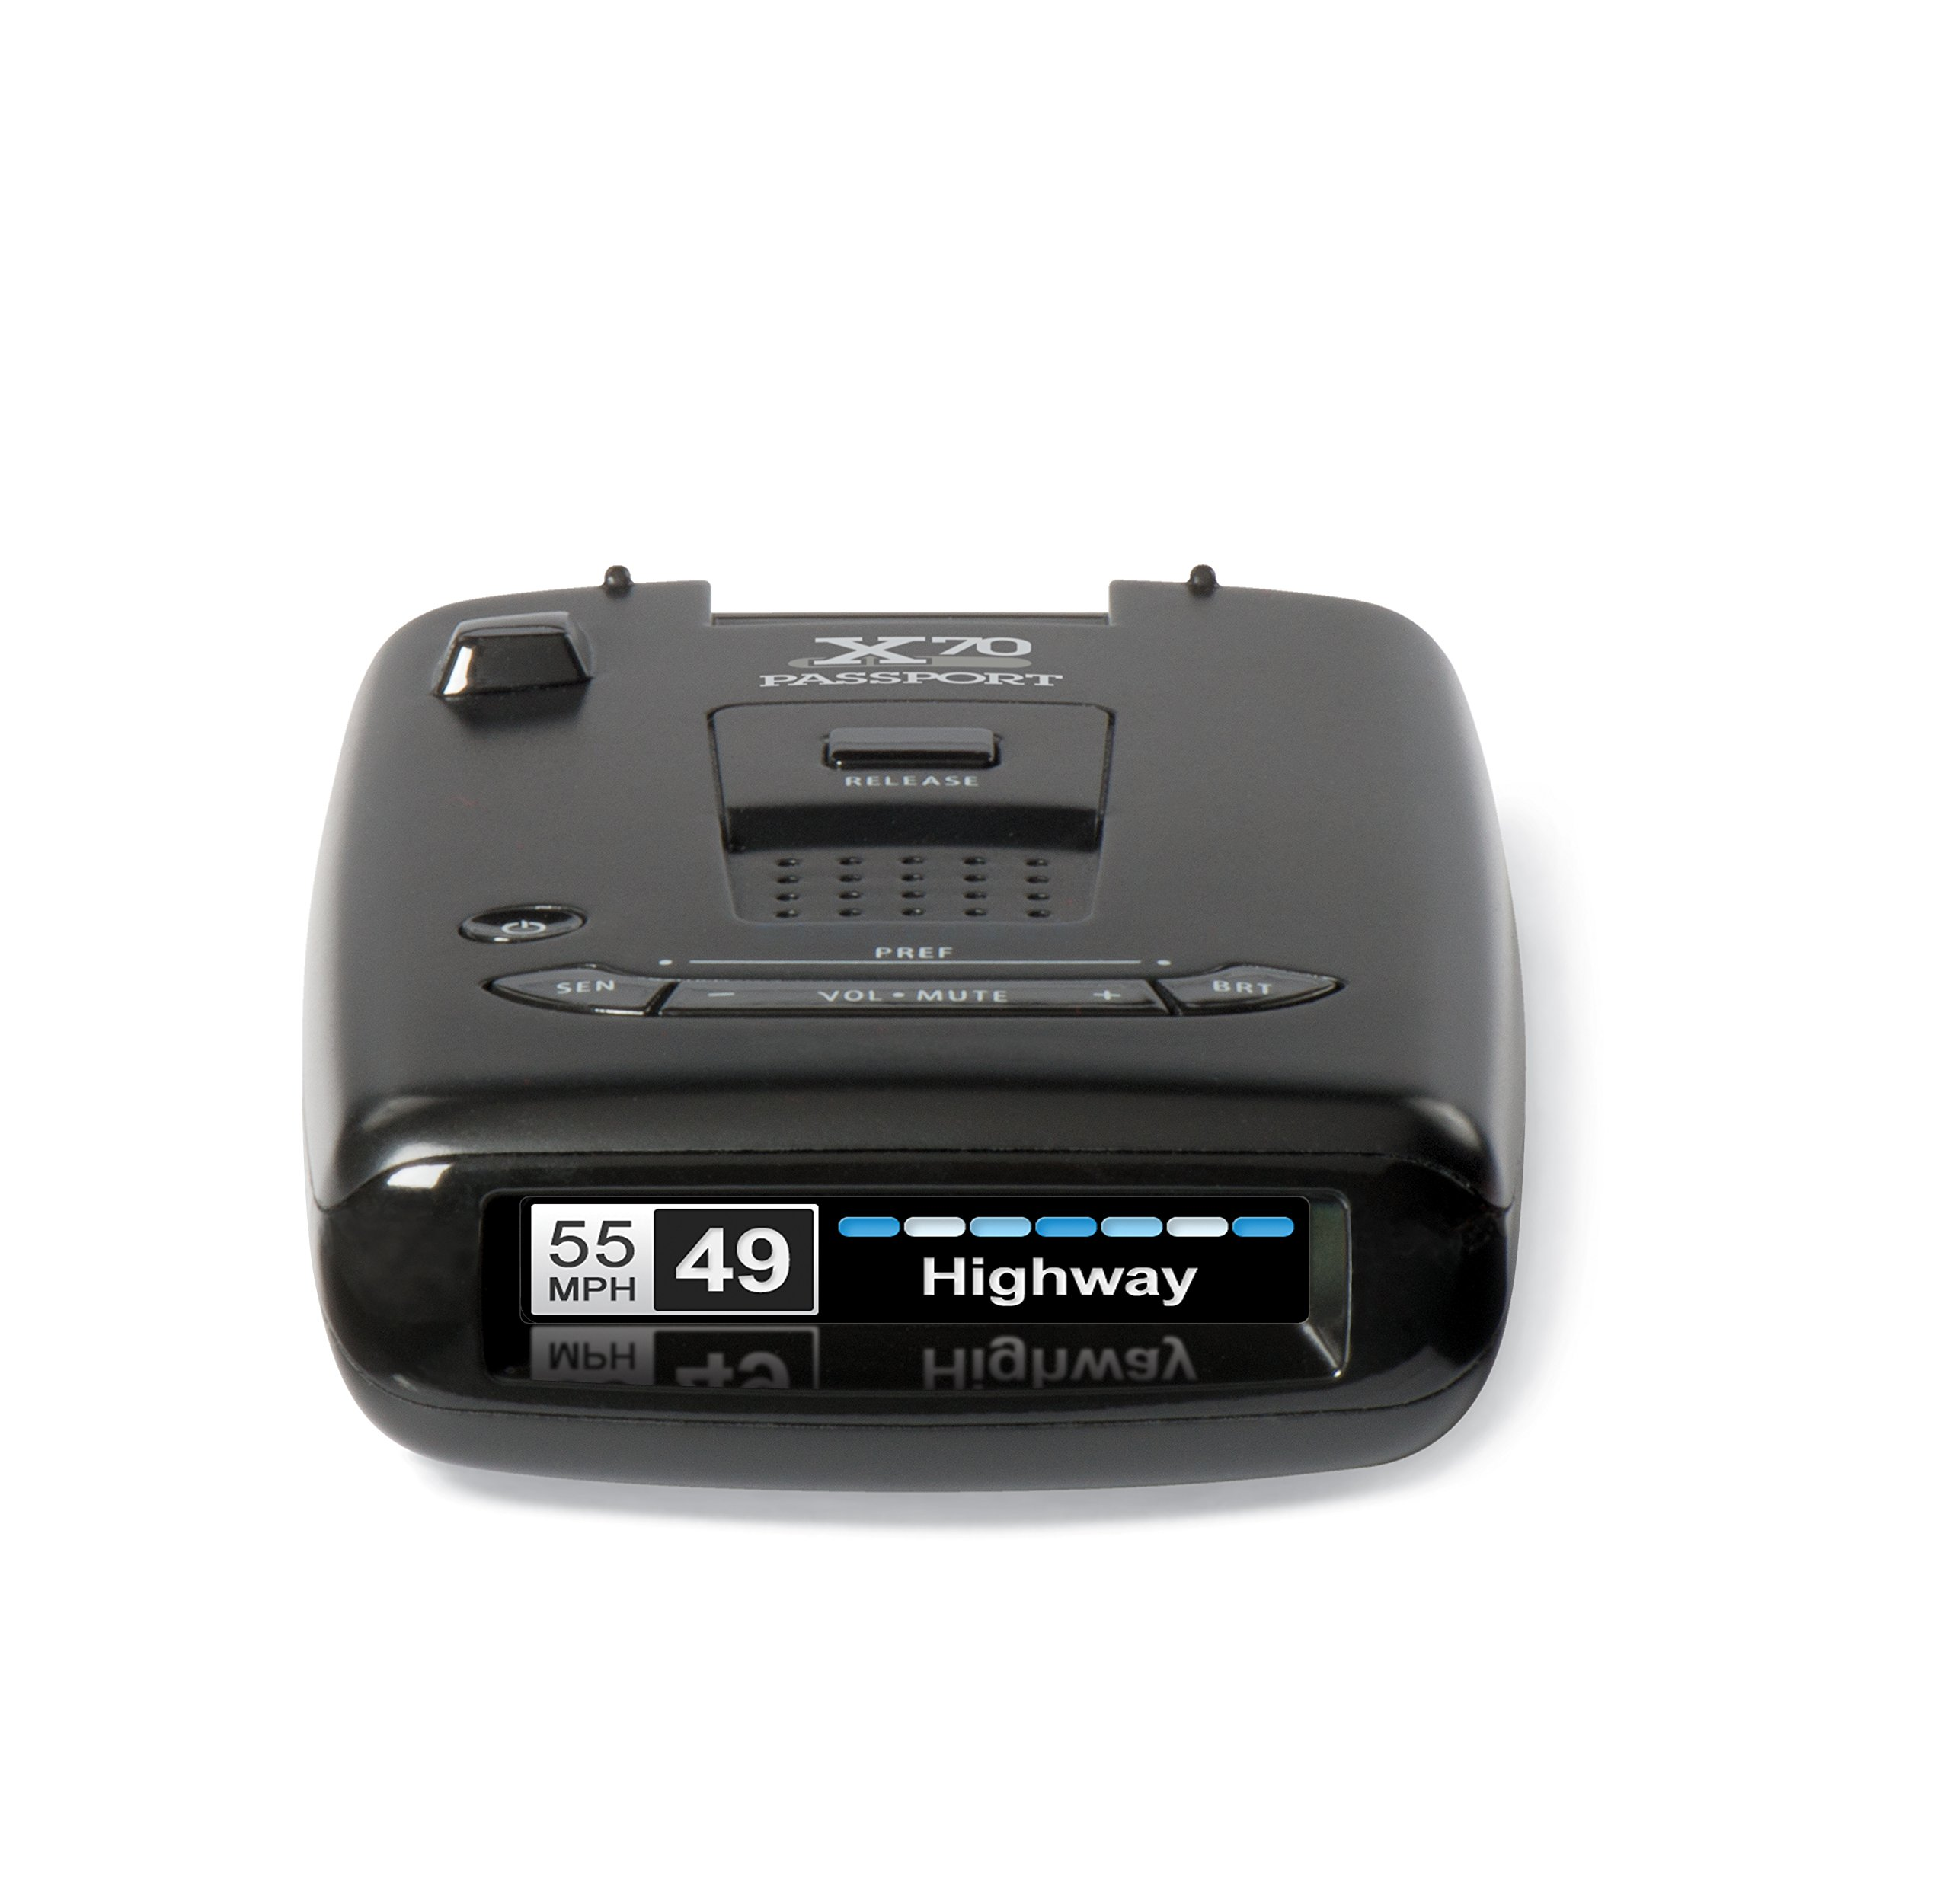 Escort Passport X70 Radar Detector